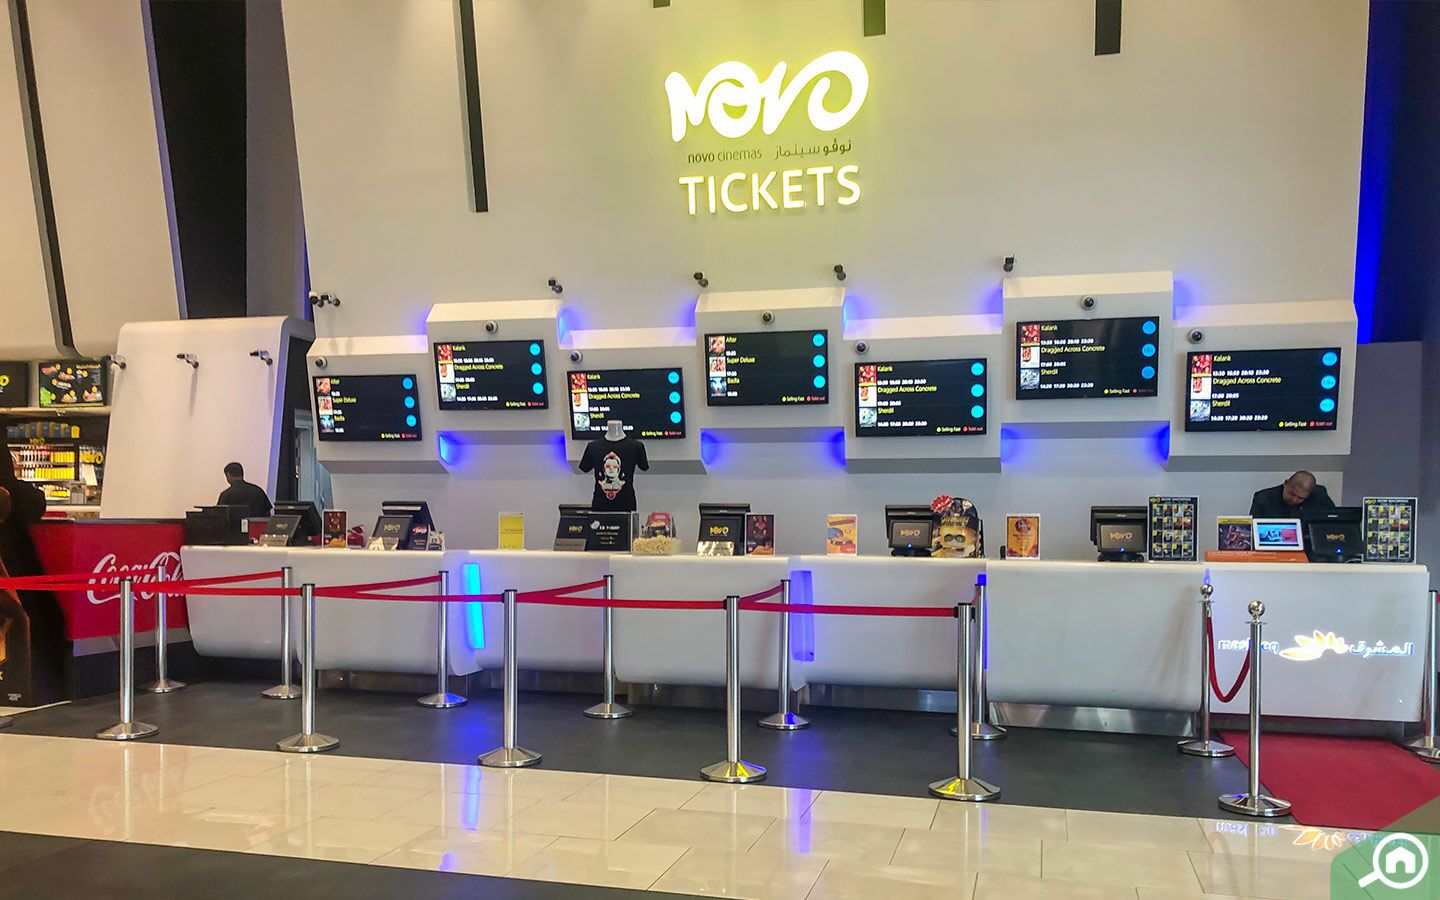 Ticket counter of Novo Cinemas